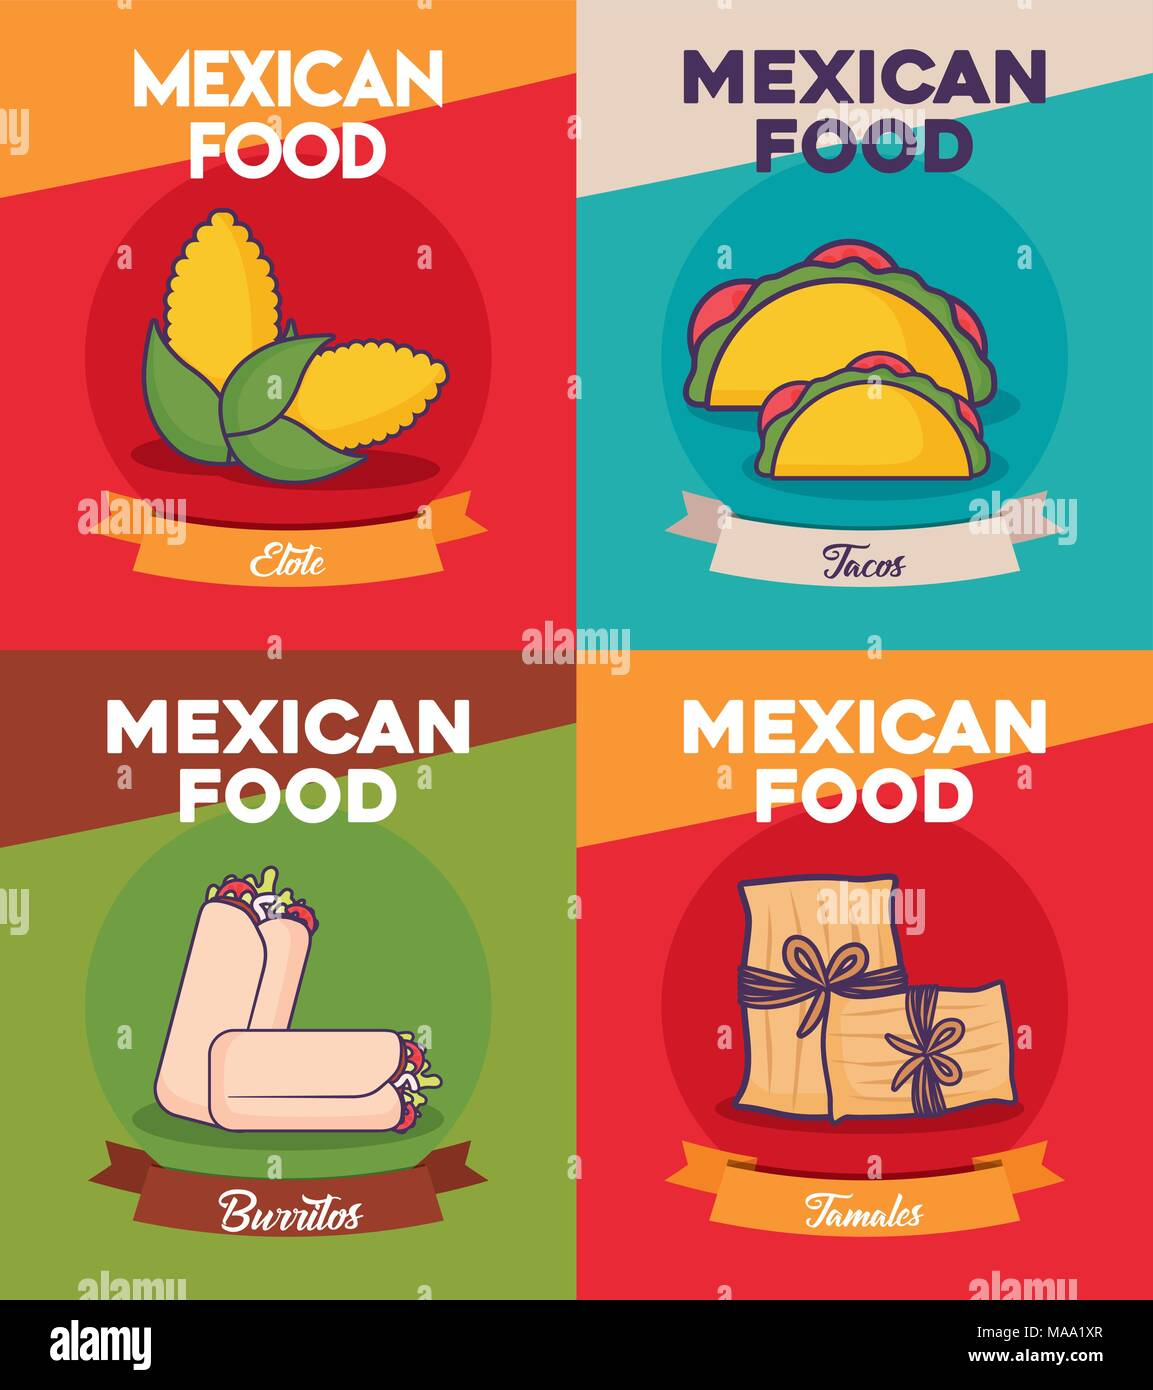 Mexican Restaurant Tacos Burritos Stock Photos Set Of Meat Cuts Diagram In Colourful Style Icon Food Concept Over Colorful Background Vector Illustration Image